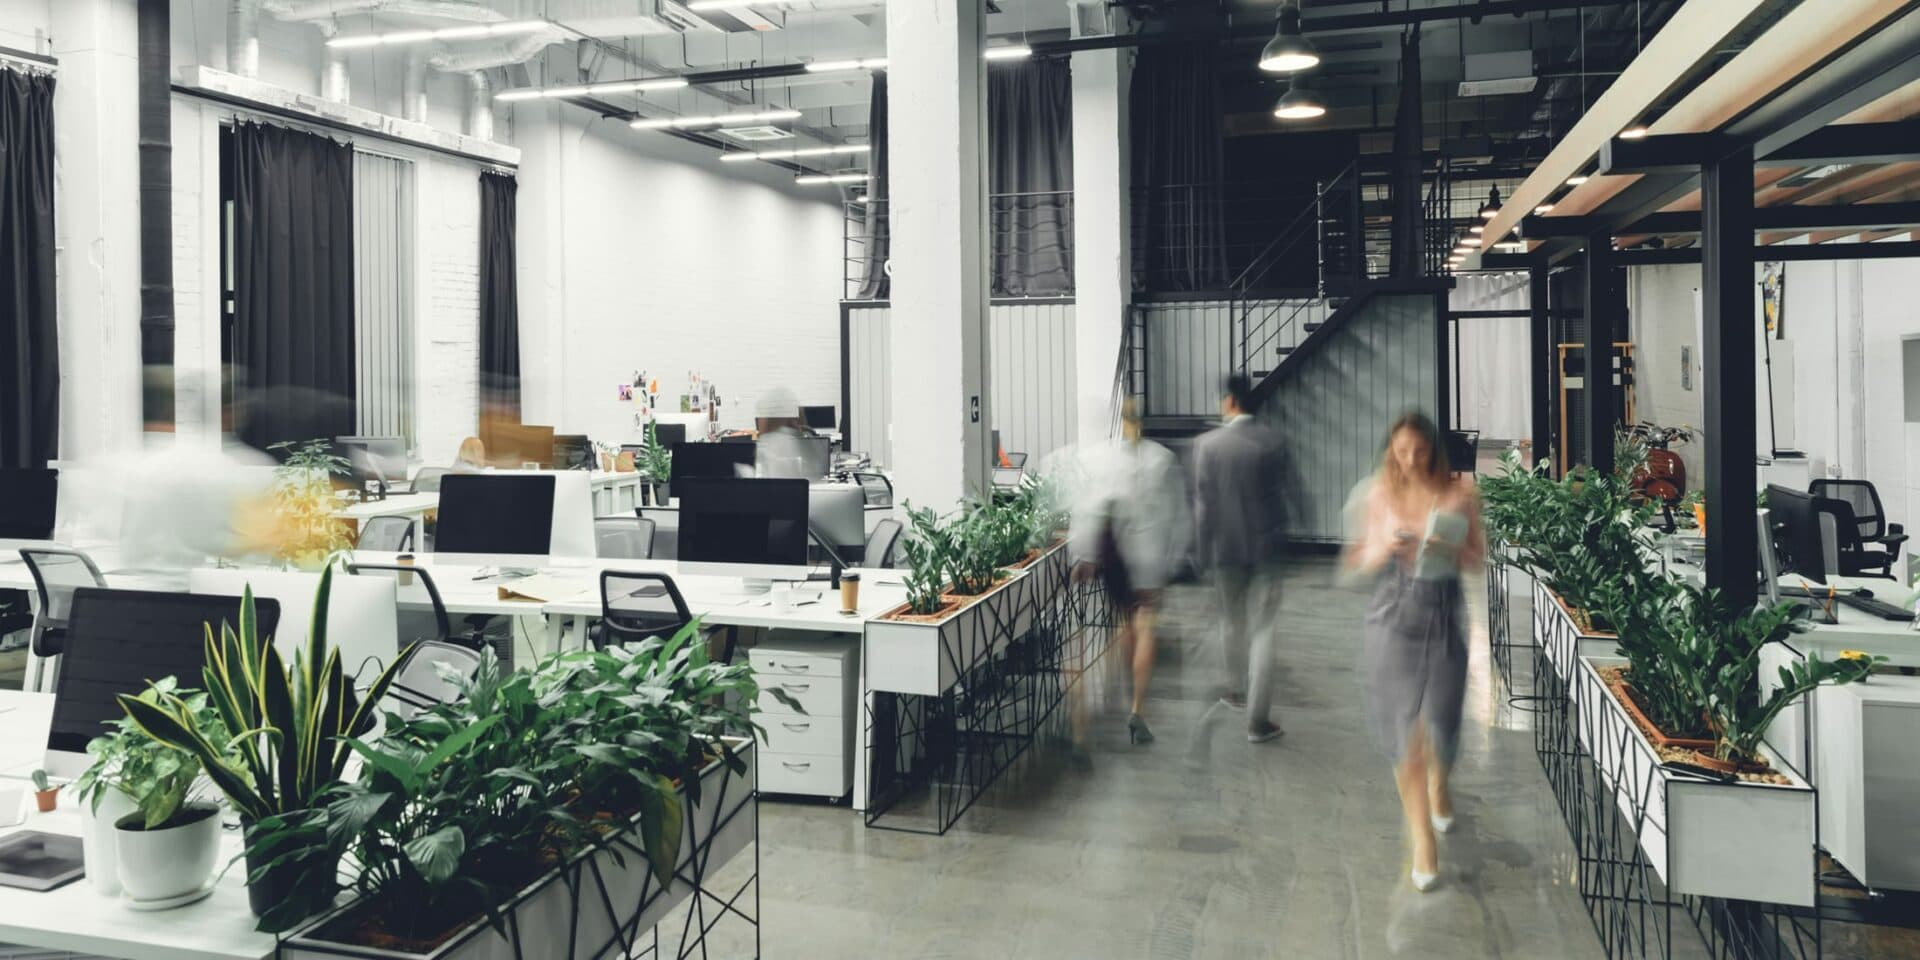 Open space office with walking workers